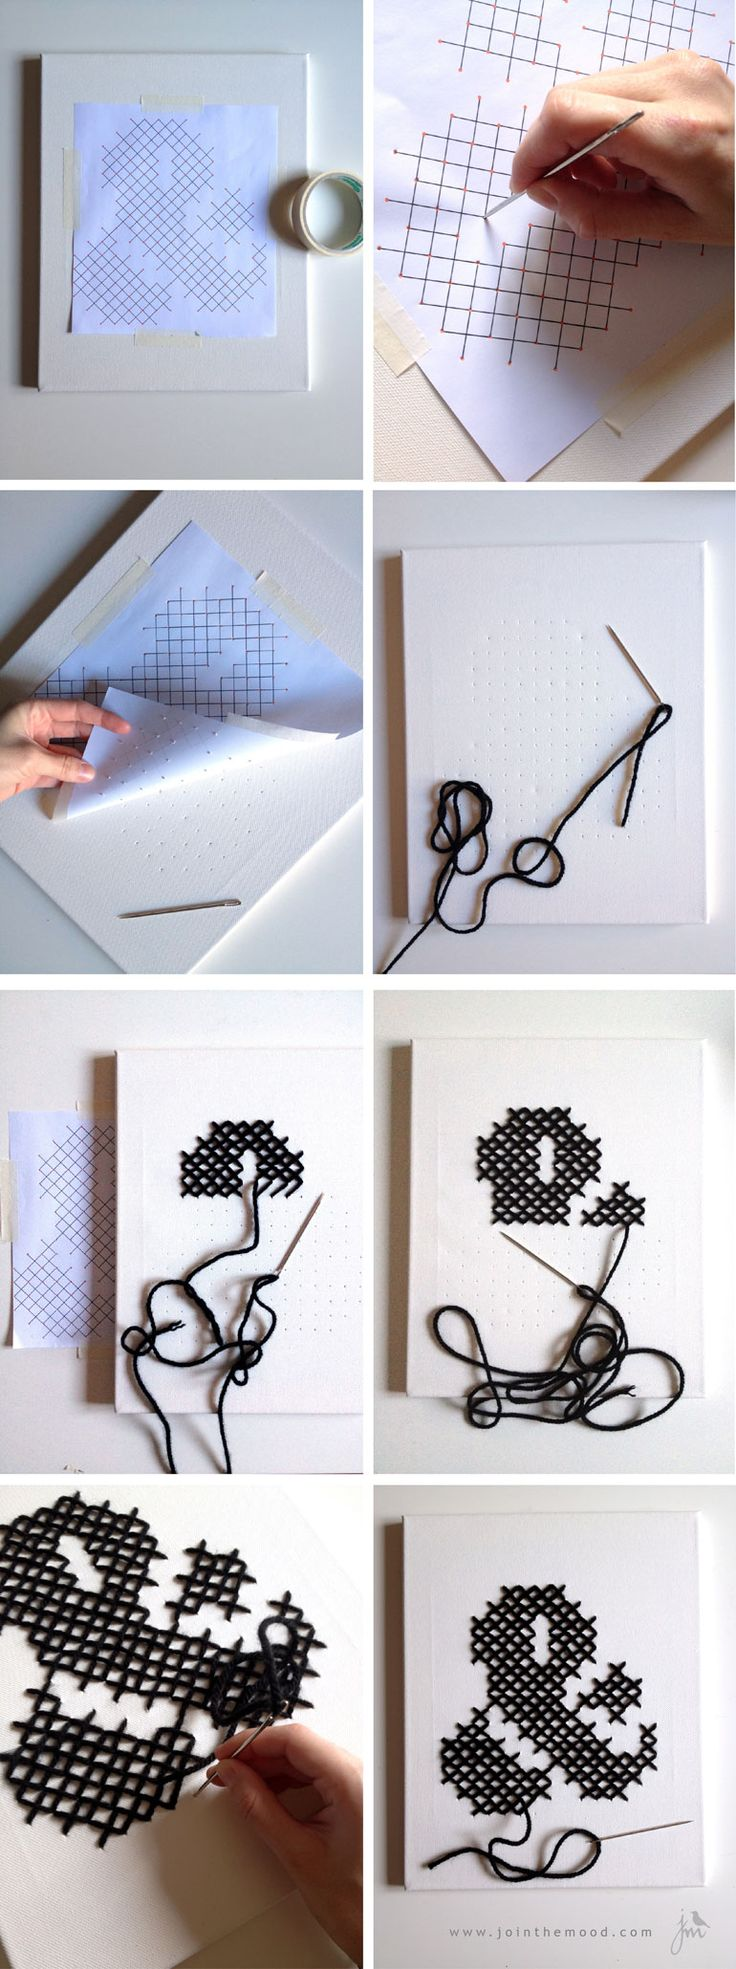 Join the Mood: AMPERSAND FRAME IN CROSS STITCH / CUADRO DE AMPERSAND EN PUNTO DE CRUZ